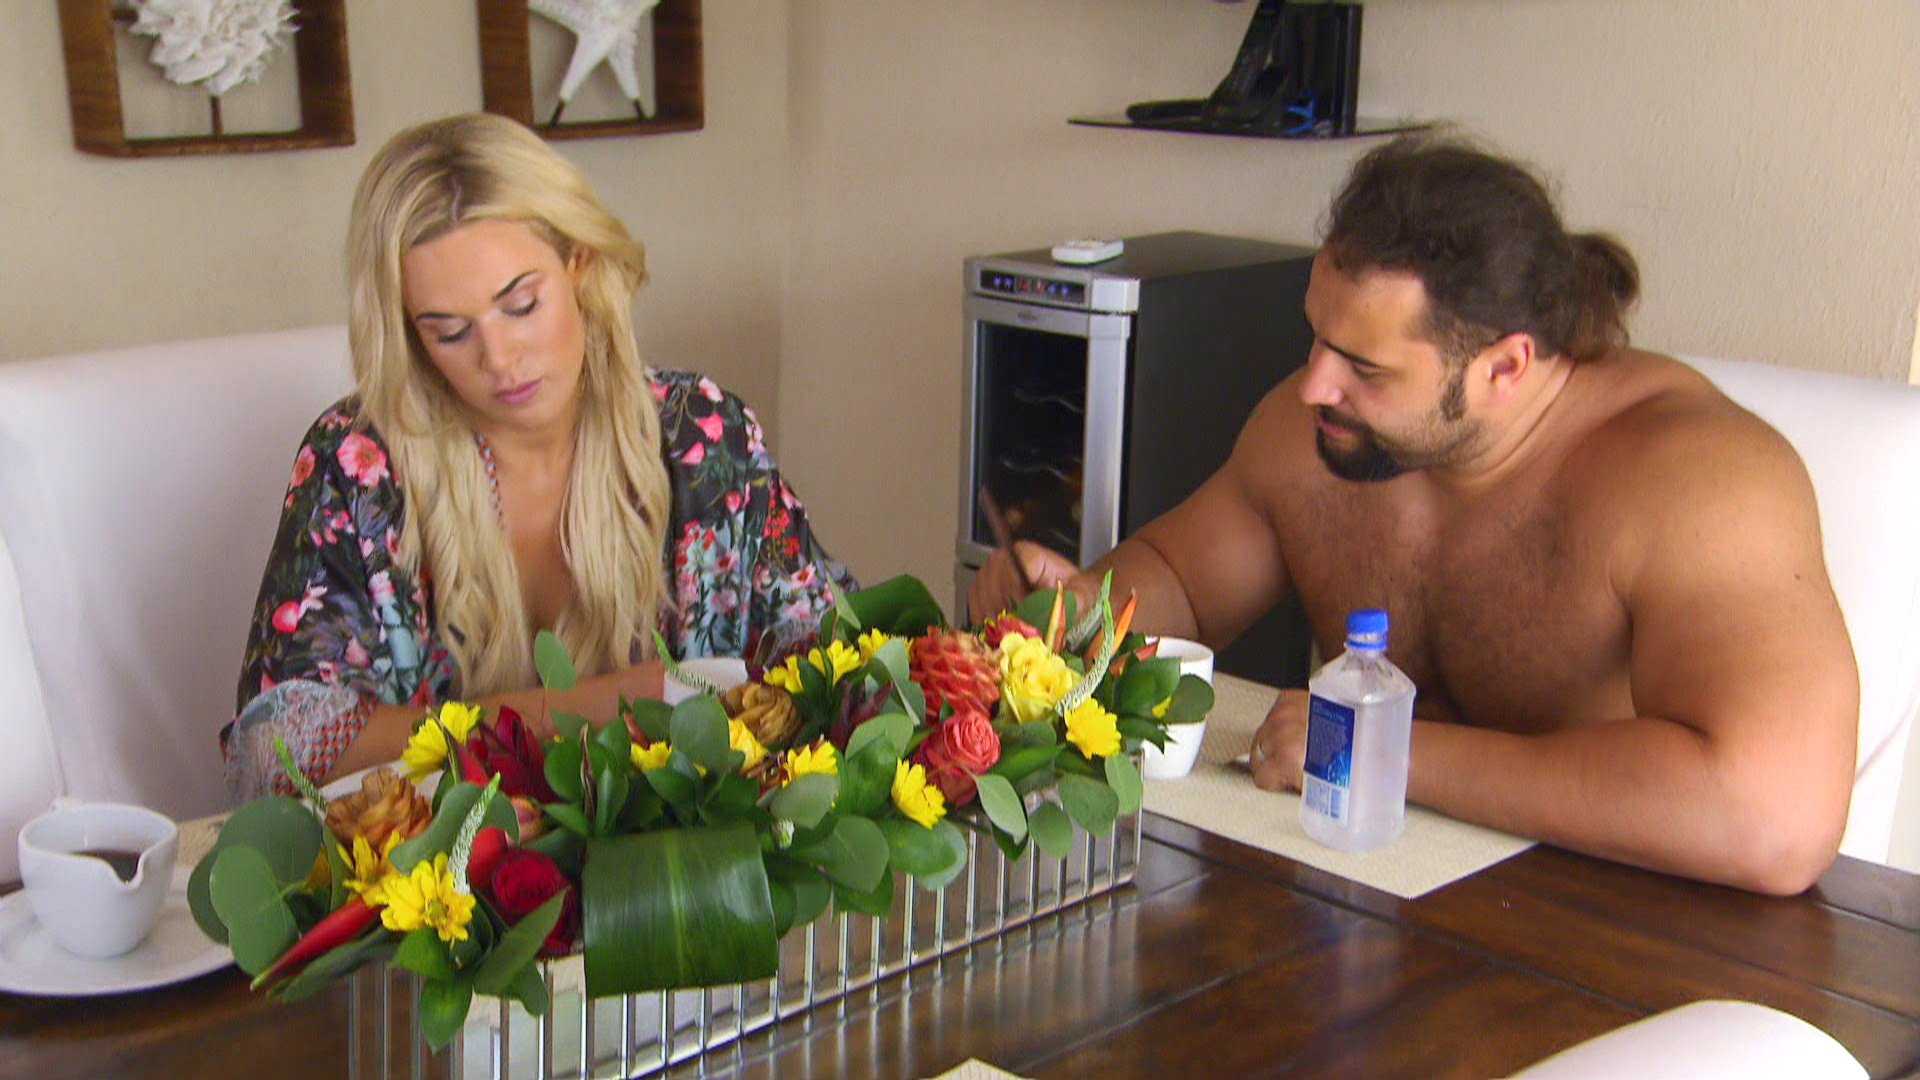 Rusev suggests that Lana reconcile with Renee, but she isn't having it.